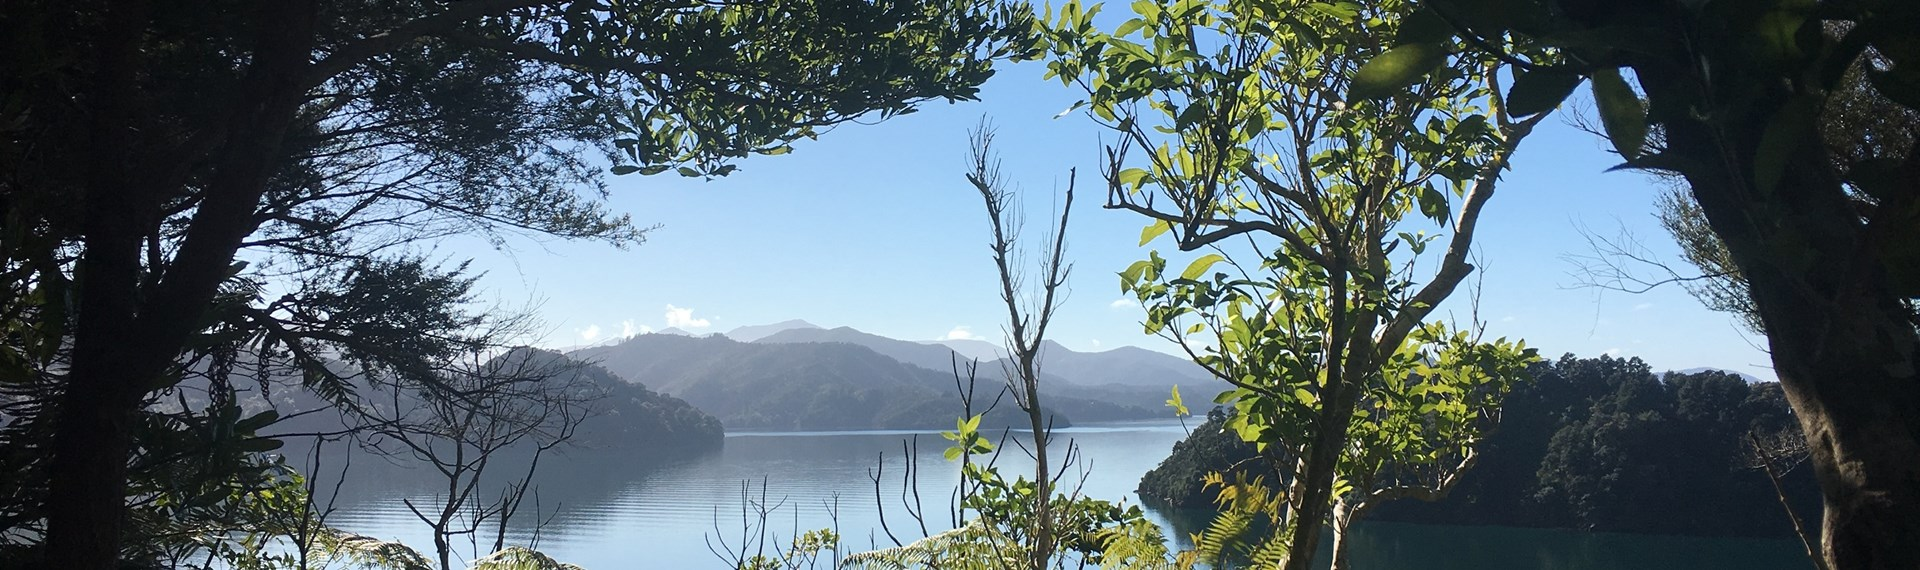 A stunning view across Ngakuta Bay in Grove Arm, near Picton in the Marlborough Sounds, is visible through native New Zealand bush.